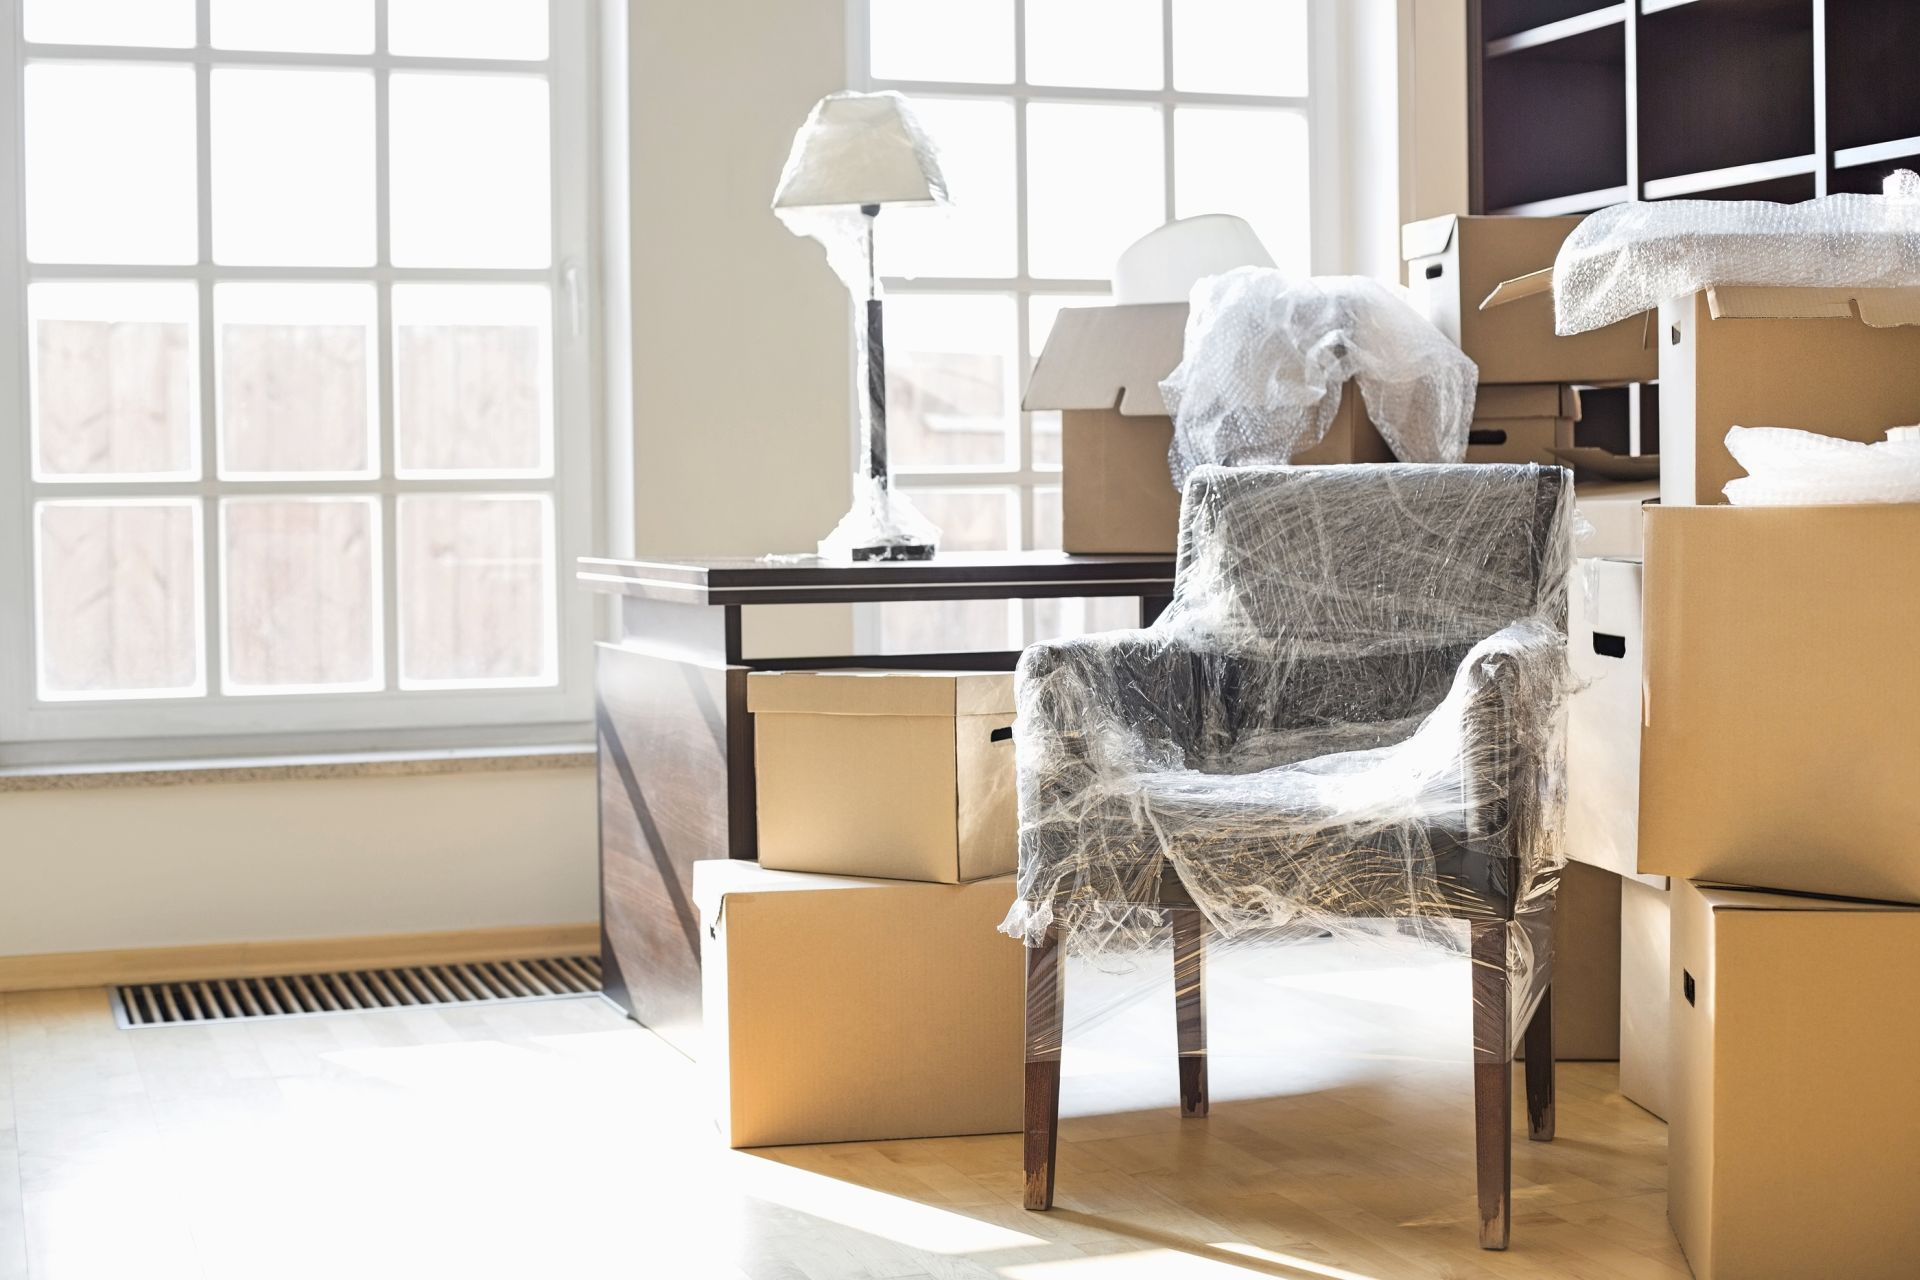 3 Tips to Downsize Your Home Without Sacrificing Your Lifestyle